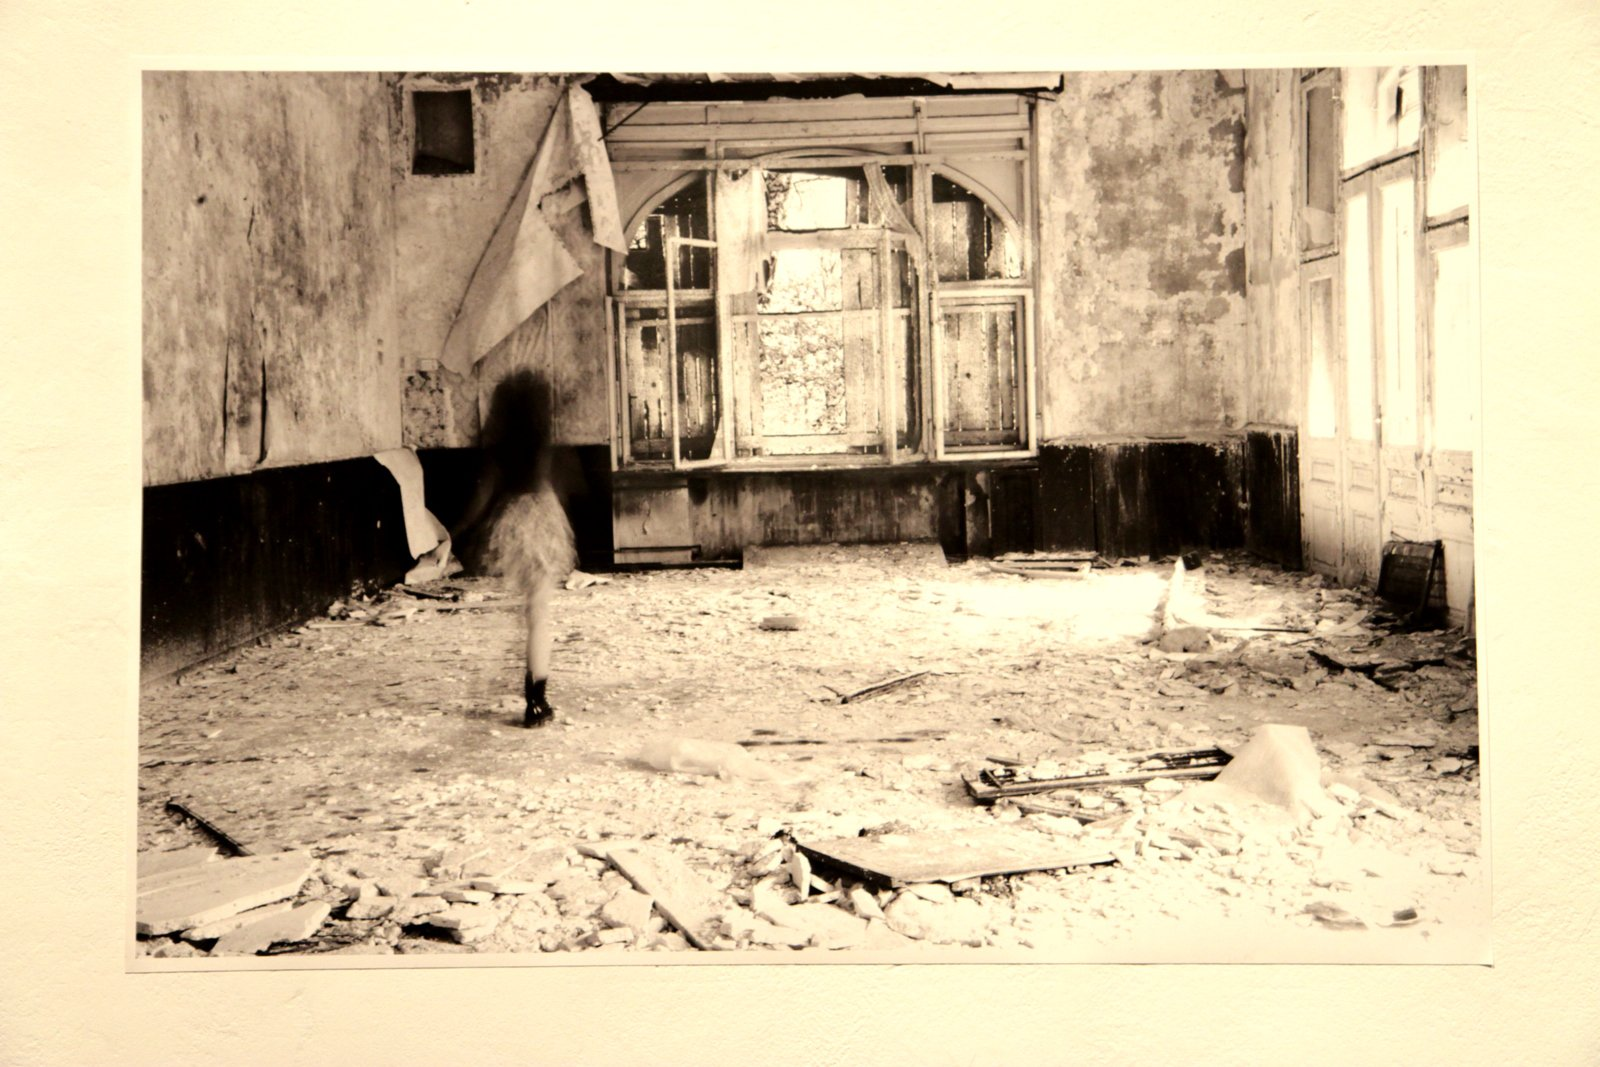 Series of Photographs as part of the installation Daddy was a spy for the Soviet Union